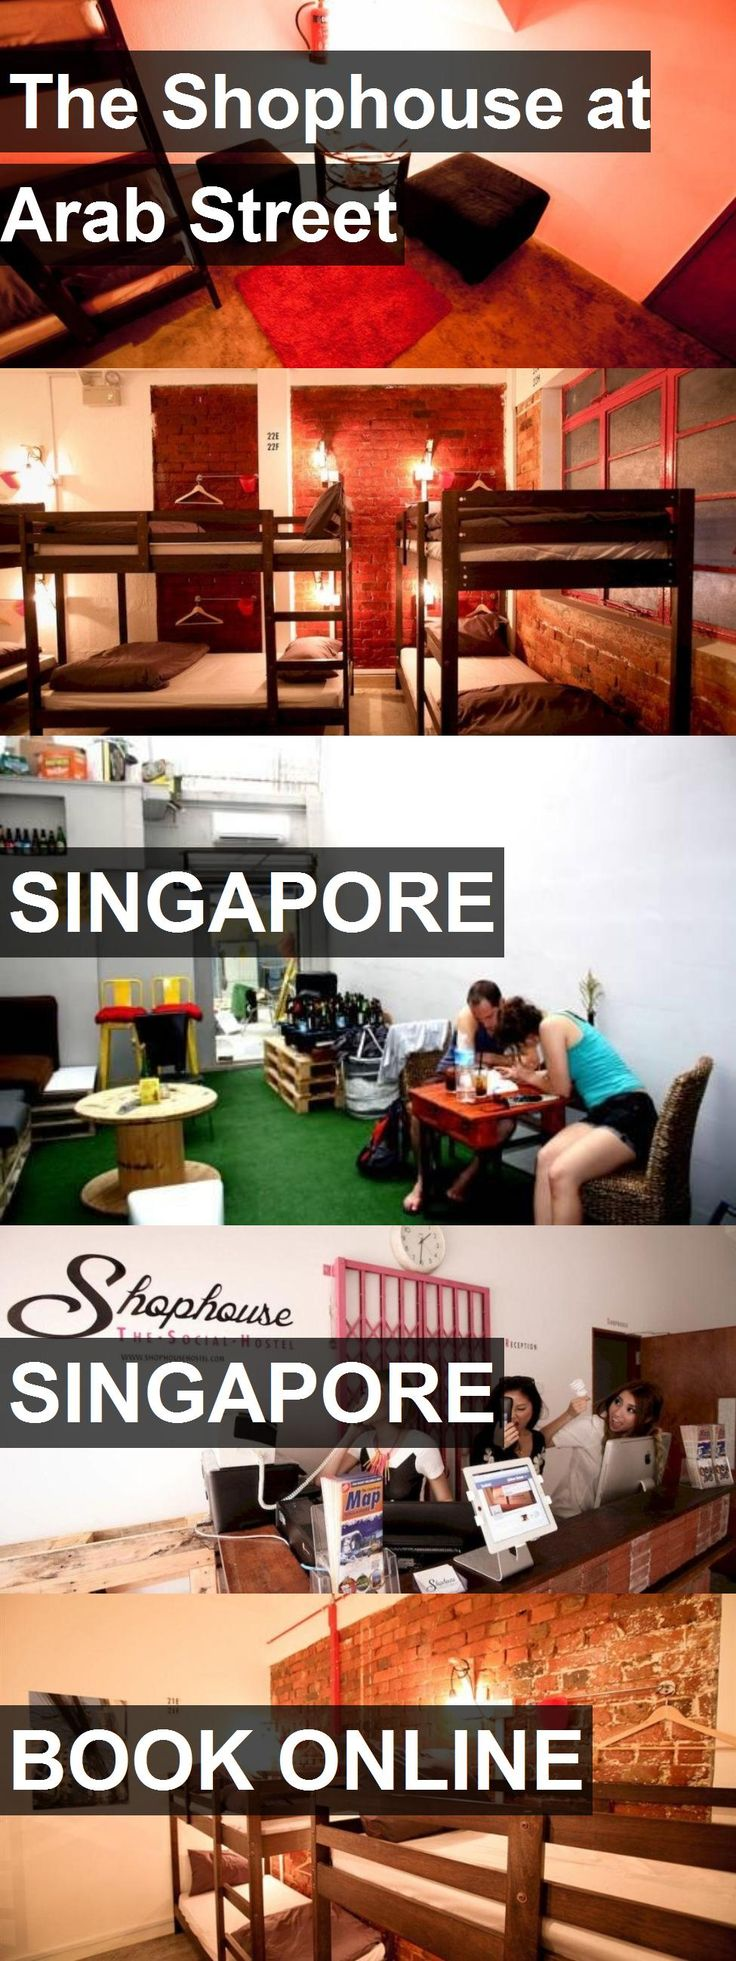 Hotel The Shophouse At Arab Street In Singapore For More Information Photos